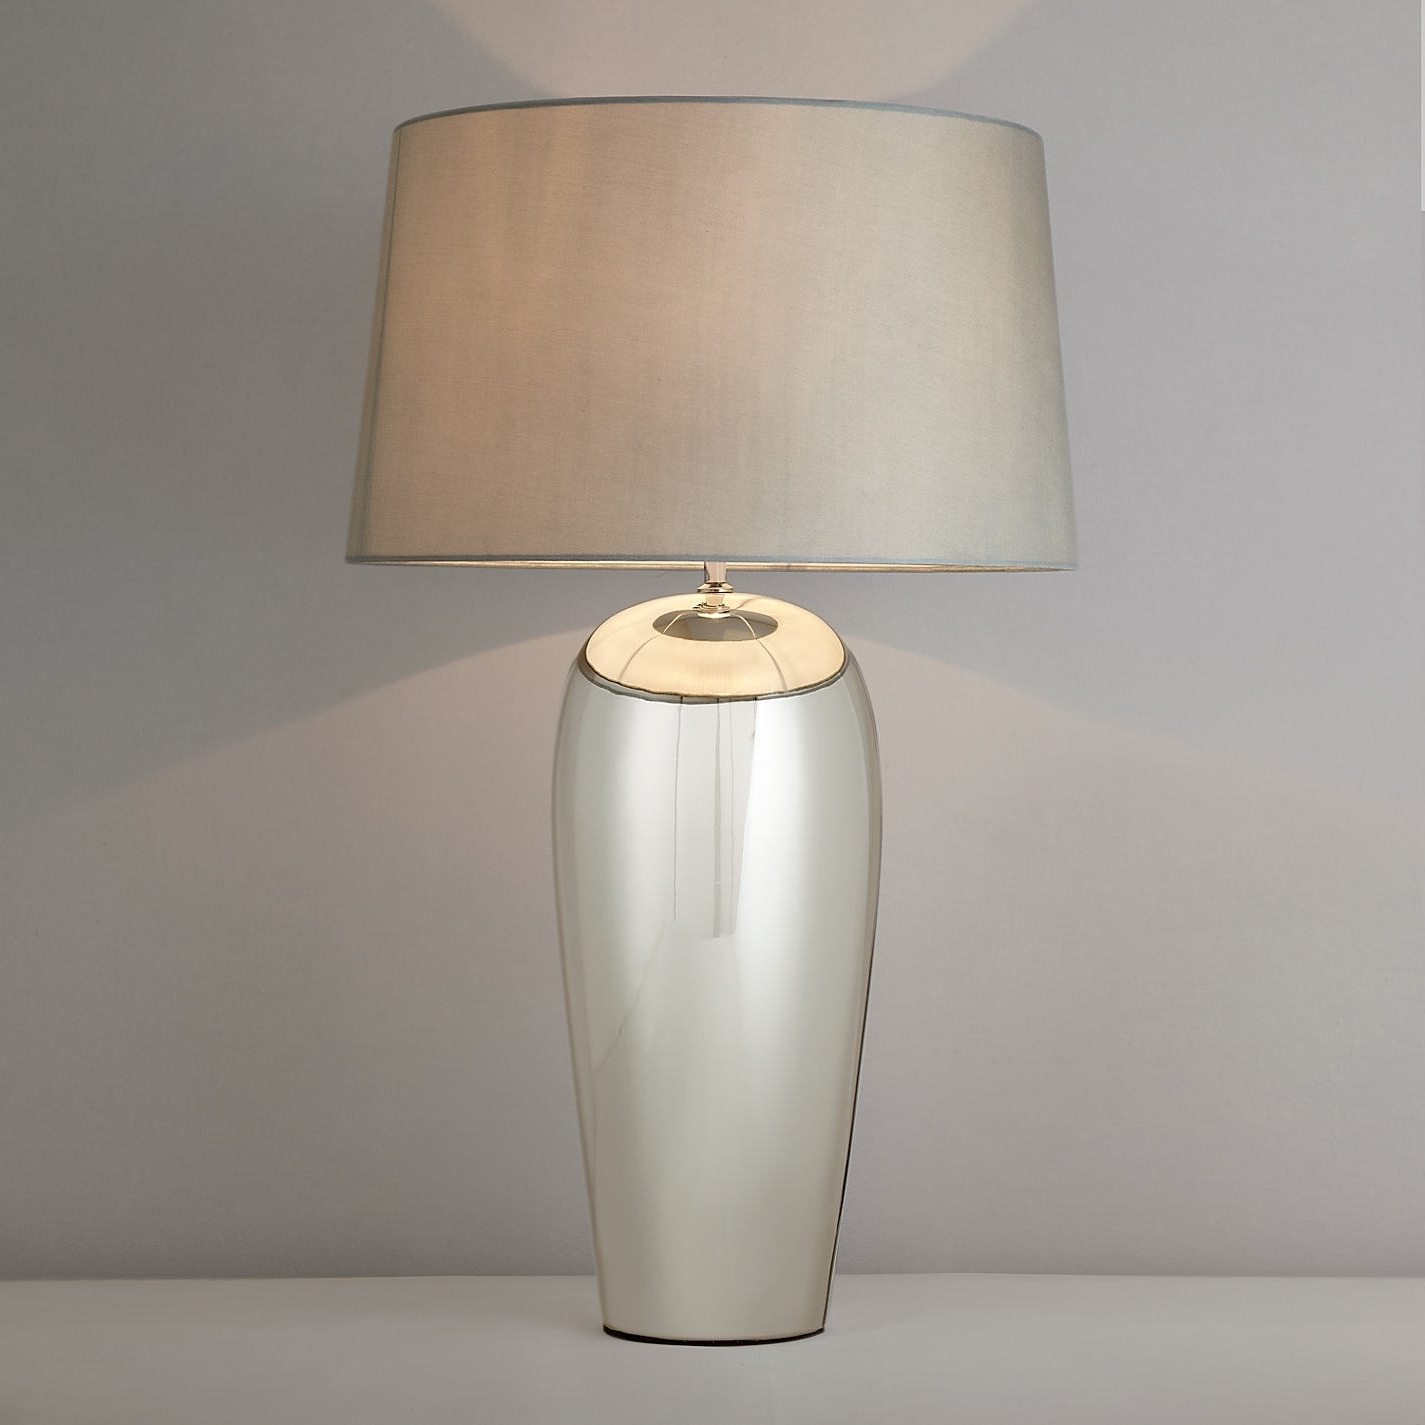 Well Liked Gallery John Lewis Table Lamps – Badotcom Intended For John Lewis Table Lamps For Living Room (View 18 of 20)